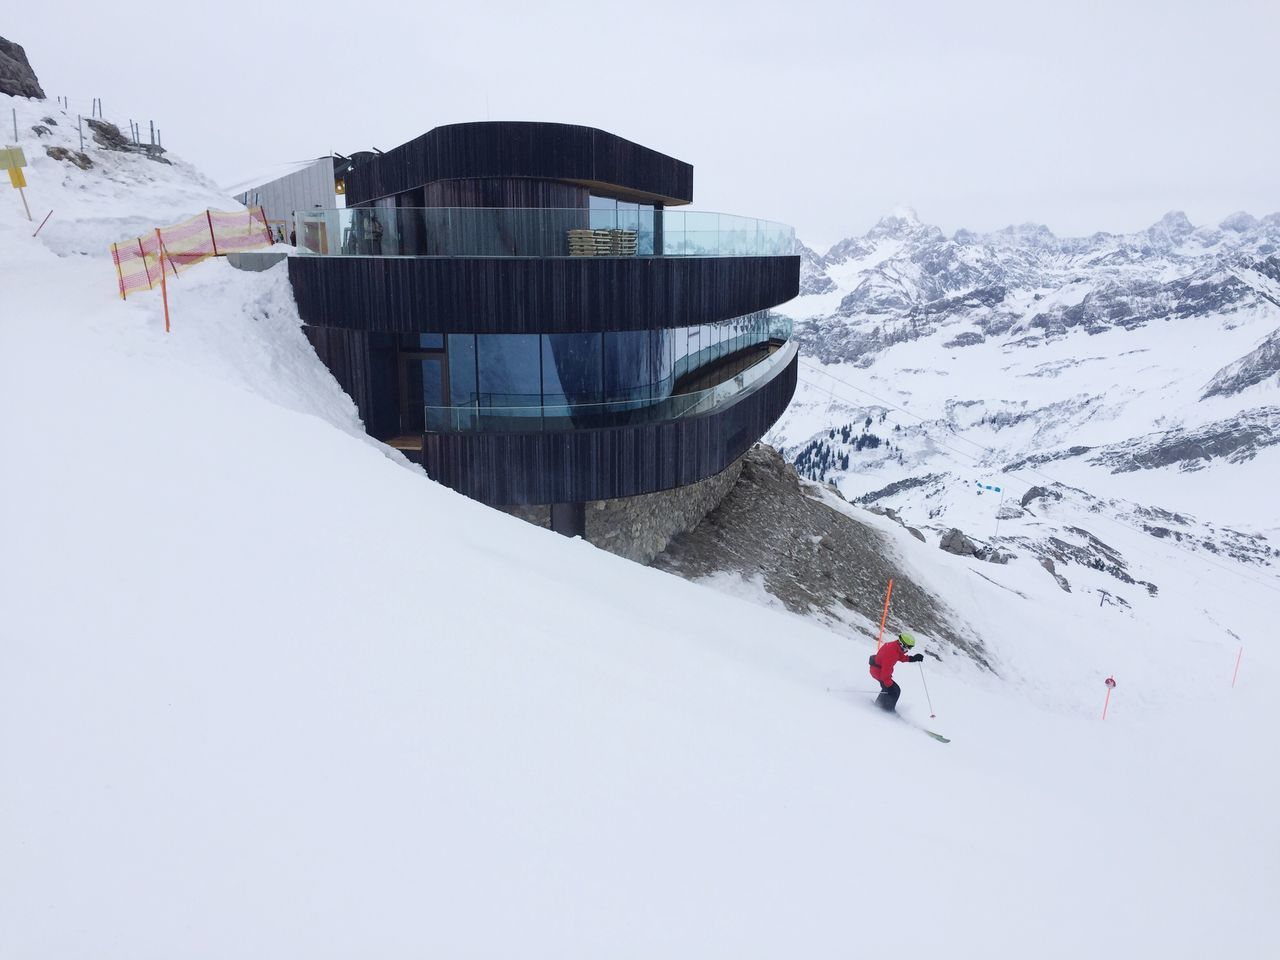 Mountain Nebelhorn Peak Restaurant Bar Architecture Modern Modern Architecture Snow Winter Skiing Winter Sport Allgäu